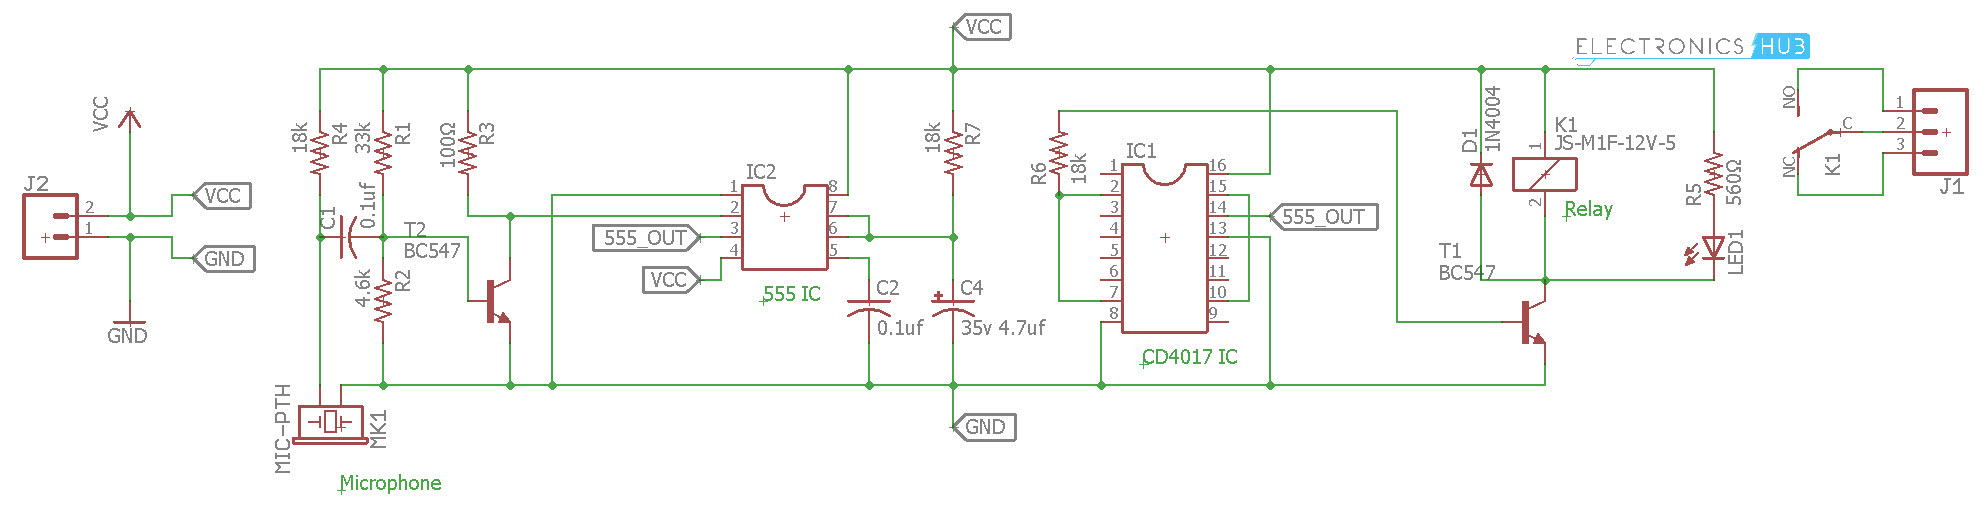 Clap Switch Circuit For Devices Working And Applications Voice Warning Diagram Sensorcircuit